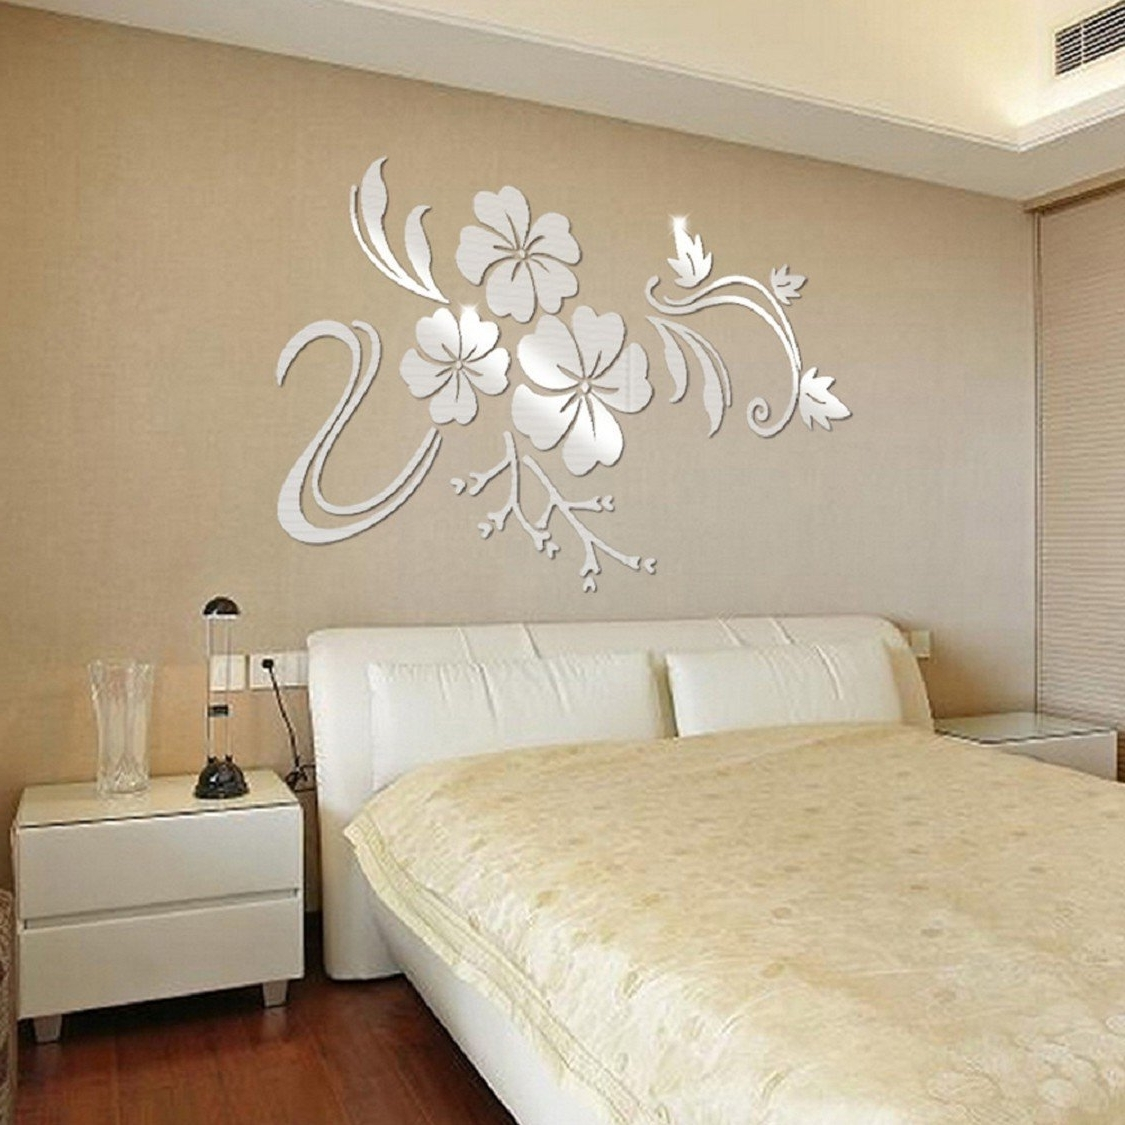 Most Recently Released Decorative 3D Wall Art Stickers Pertaining To Ikevan 1Set Acrylic Art 3D Mirror Flower Wall Stickers Diy Home (View 11 of 15)